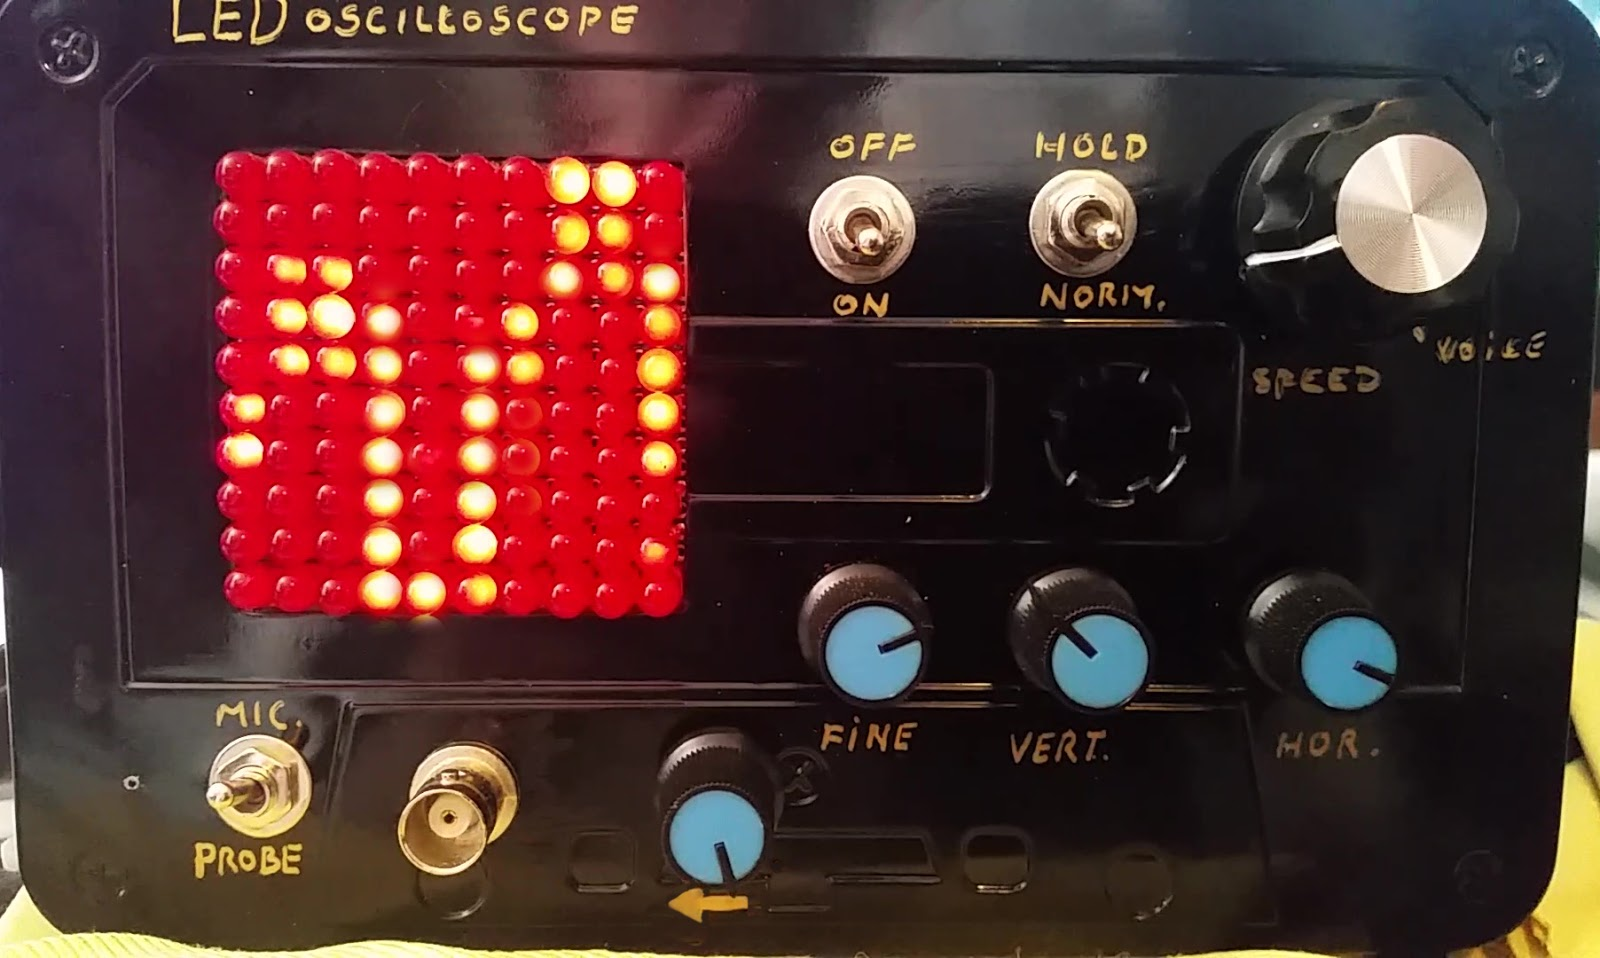 Eddy Bergmancom Led Oscilloscope With 100 Leds Pin Electret Microphone Amplifier Circuit Schematic On Pinterest I Can Really Recommend Using This Design Over The Amp In Main One Works Much Better Little Drawback Is That It